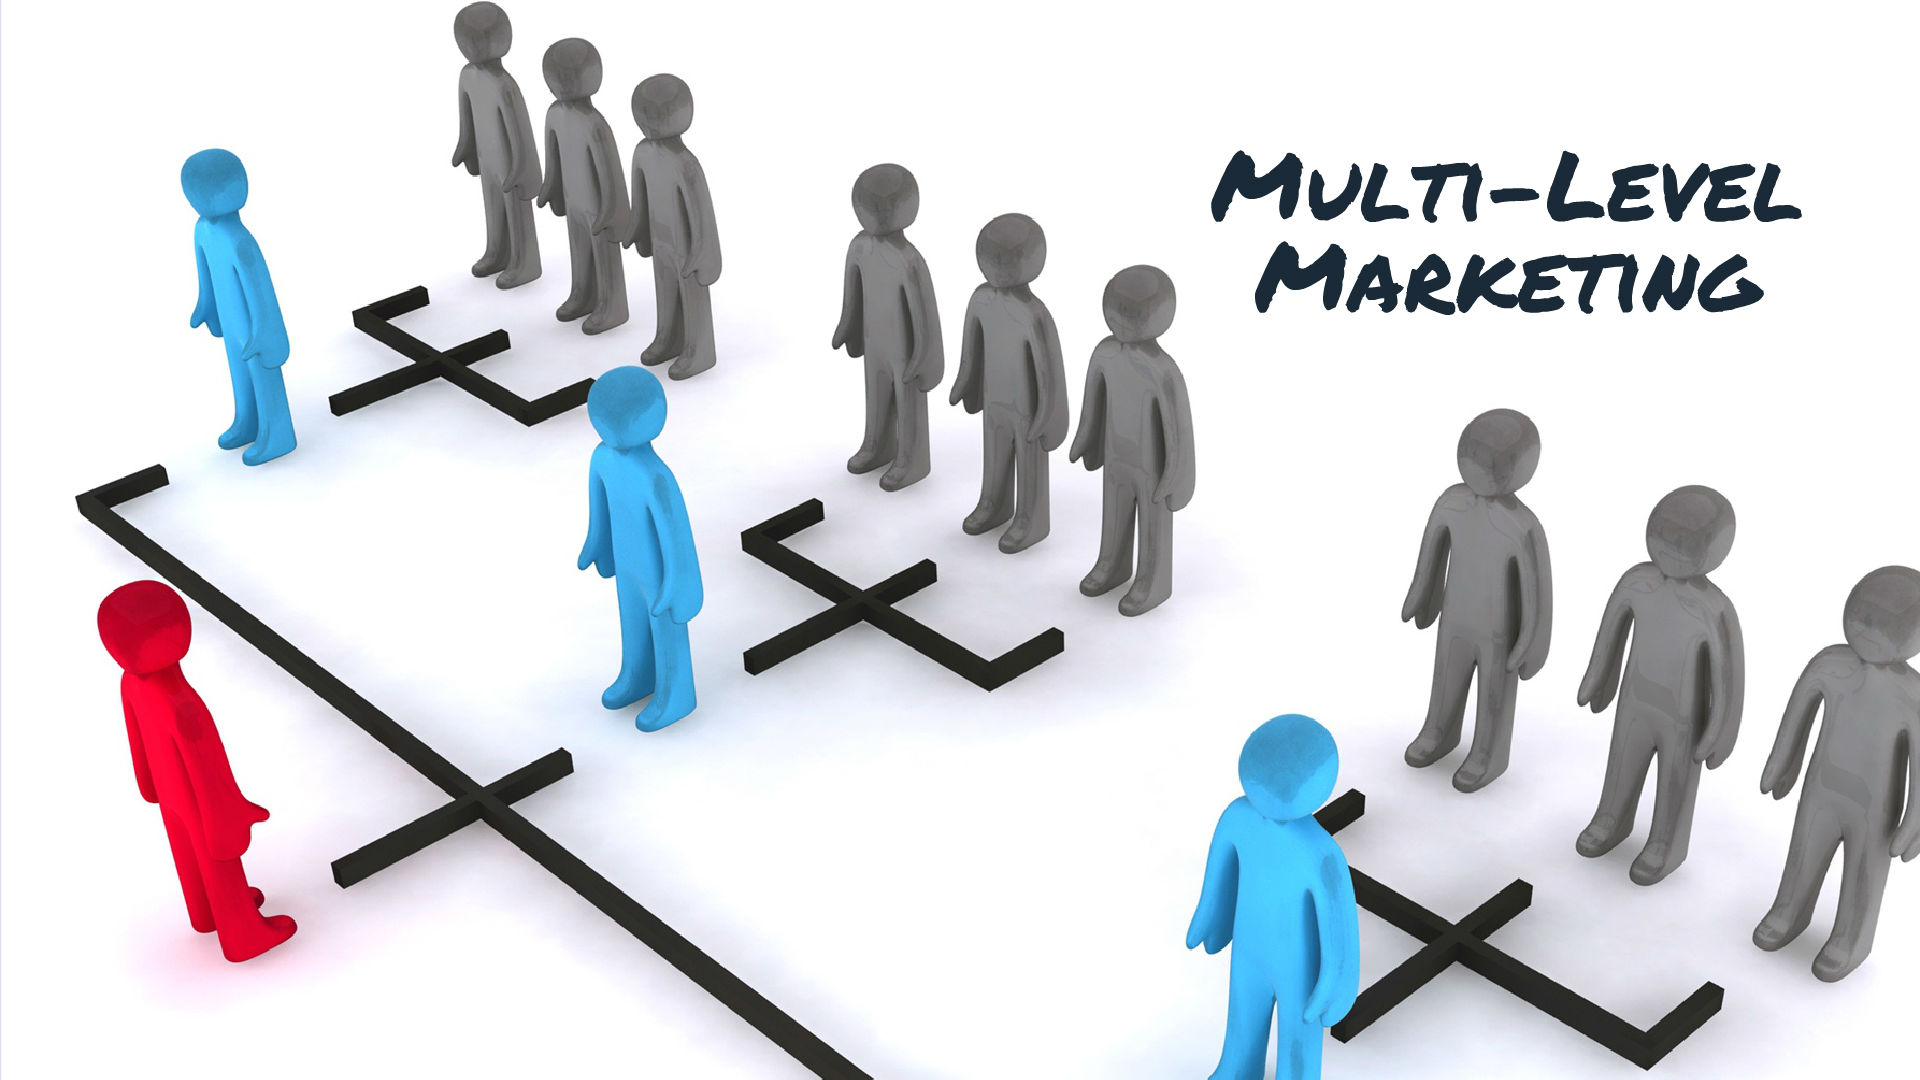 the multi level marketing Another p— sorry, multi-level marketing scheme convincing people they'll get rich by flogging — what is it this time protein powder.